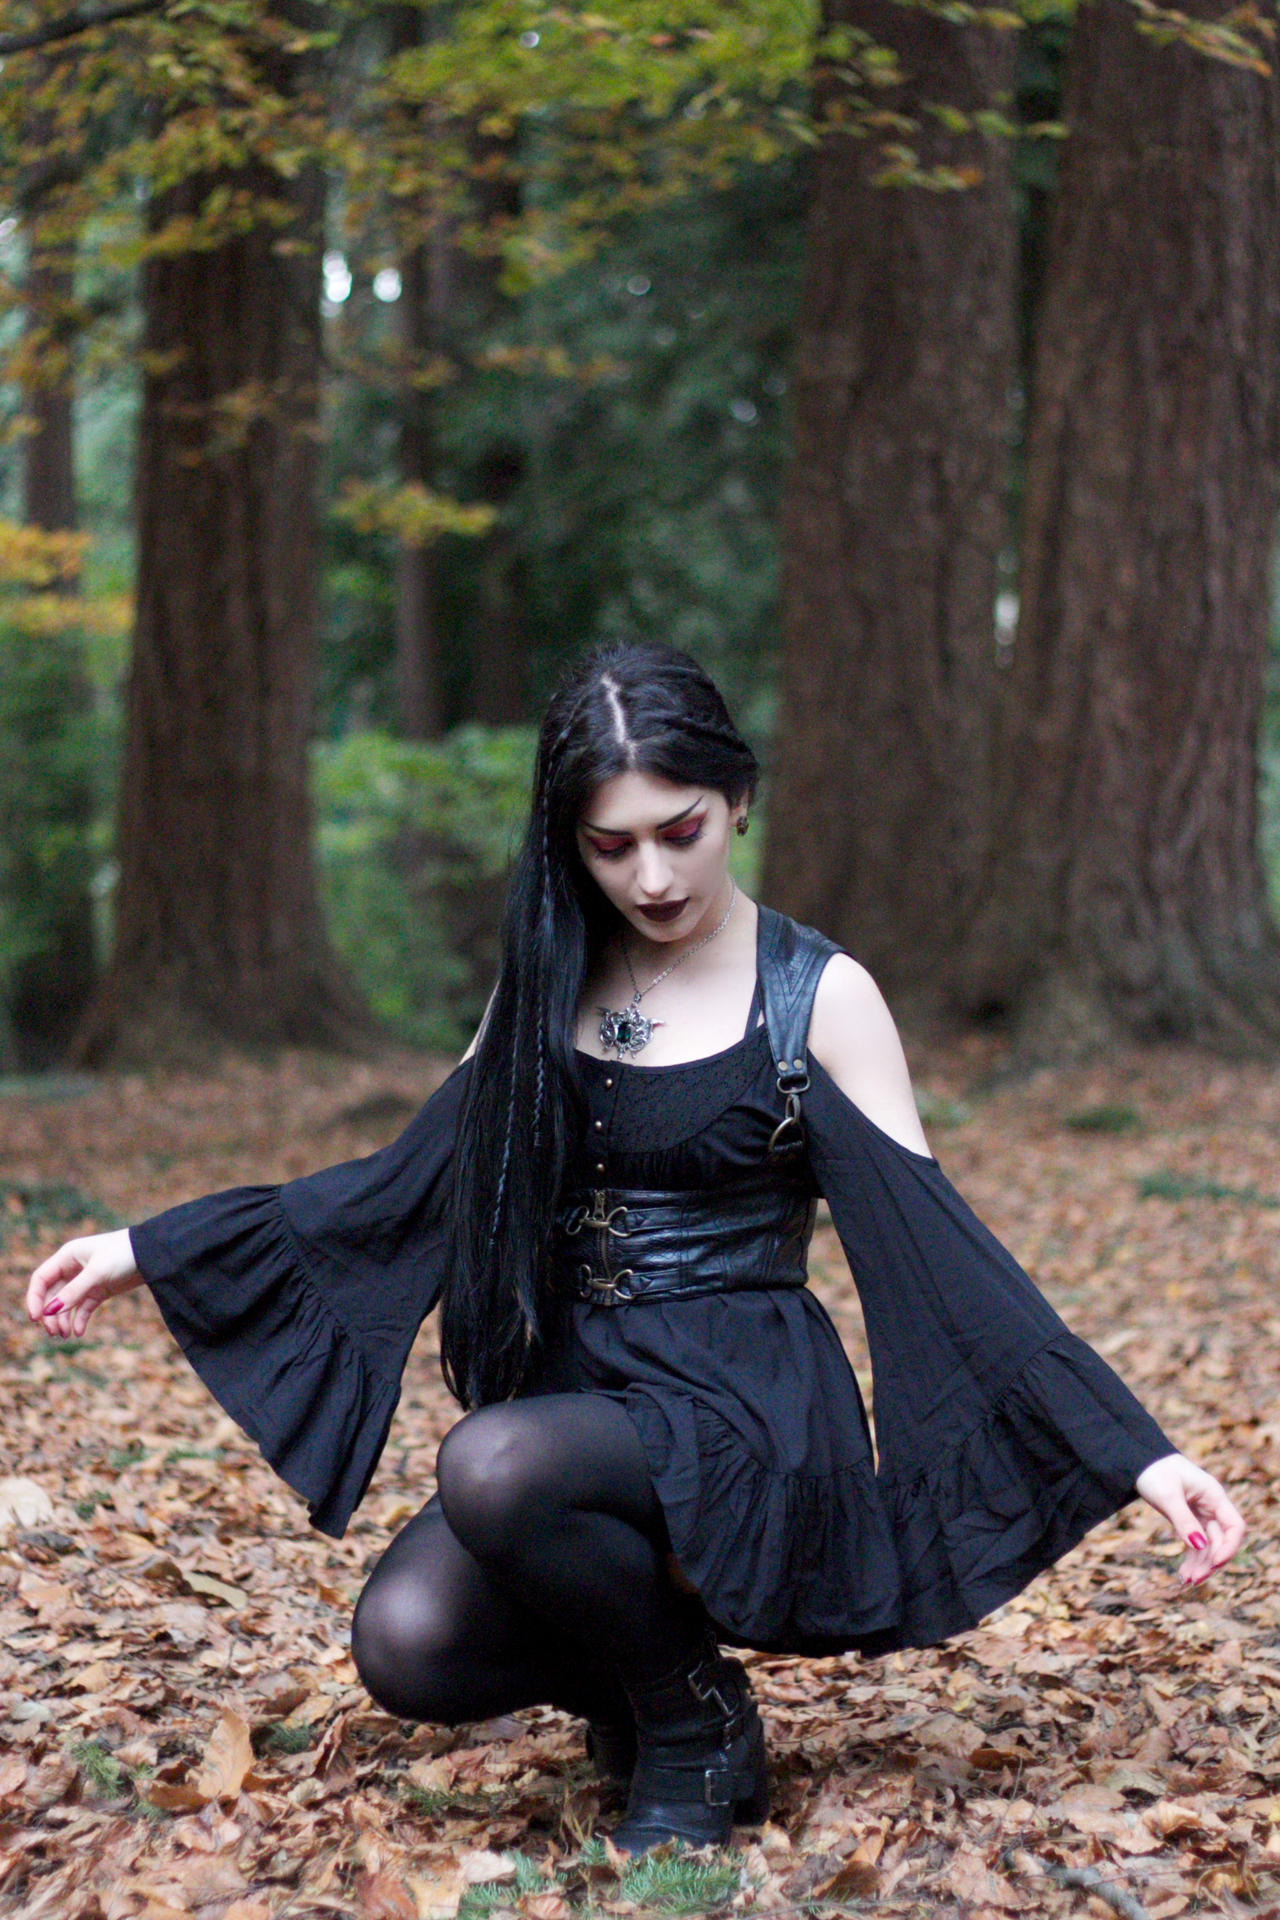 Stock - Gothic \ Fantasy - Forest Black by Mahafsoun on DeviantArt: mahafsoun.deviantart.com/art/Stock-Gothic-Fantasy-Forest-Black...